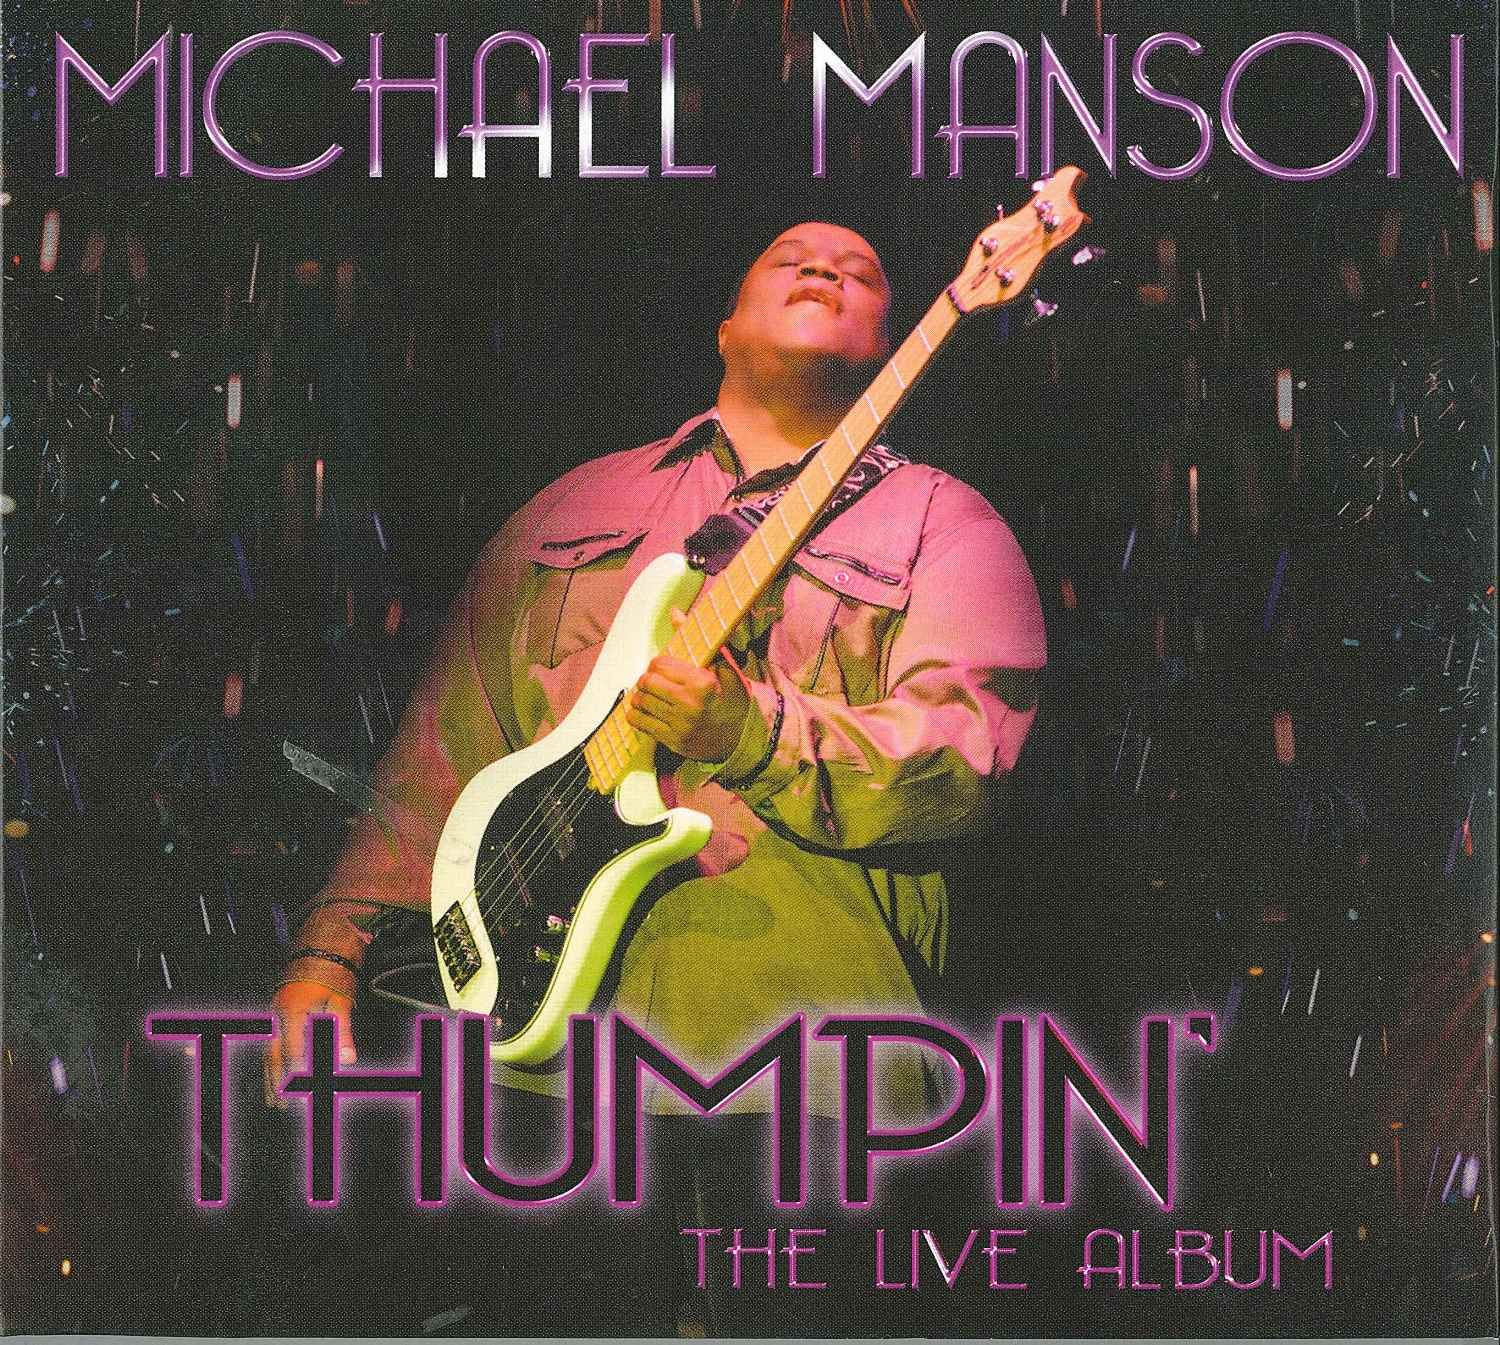 Thumpin' - The Live Album by Nugroove 2